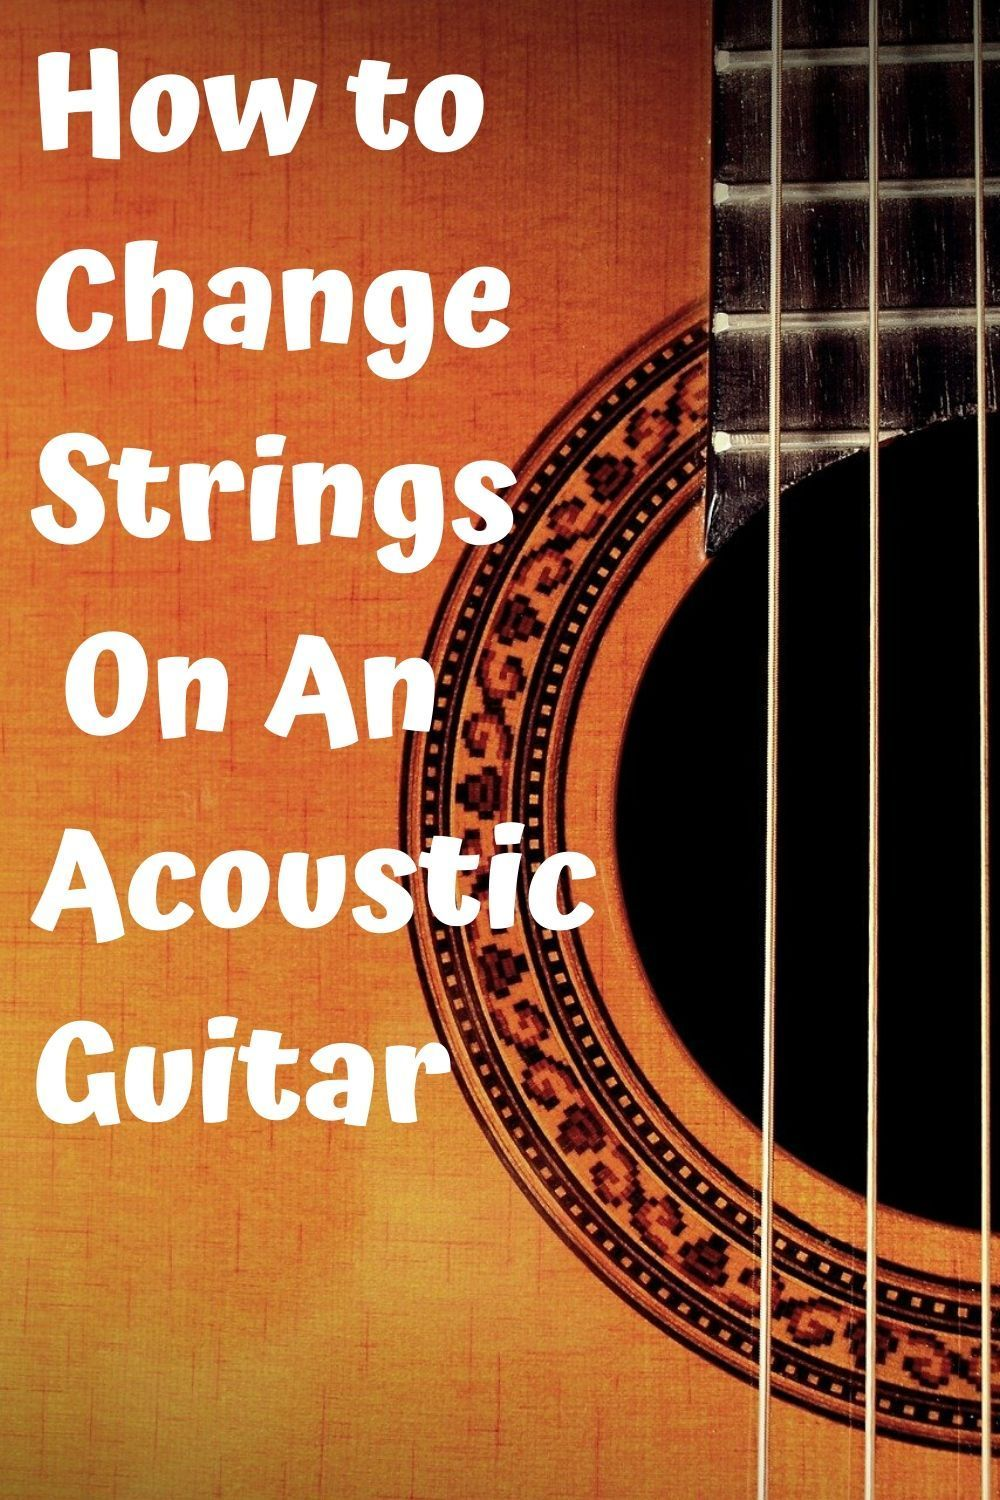 How To Change Strings On An Acoustic Guitar Step By Step Acoustic Guitar Strings Guitar Tuning Acoustic Guitar